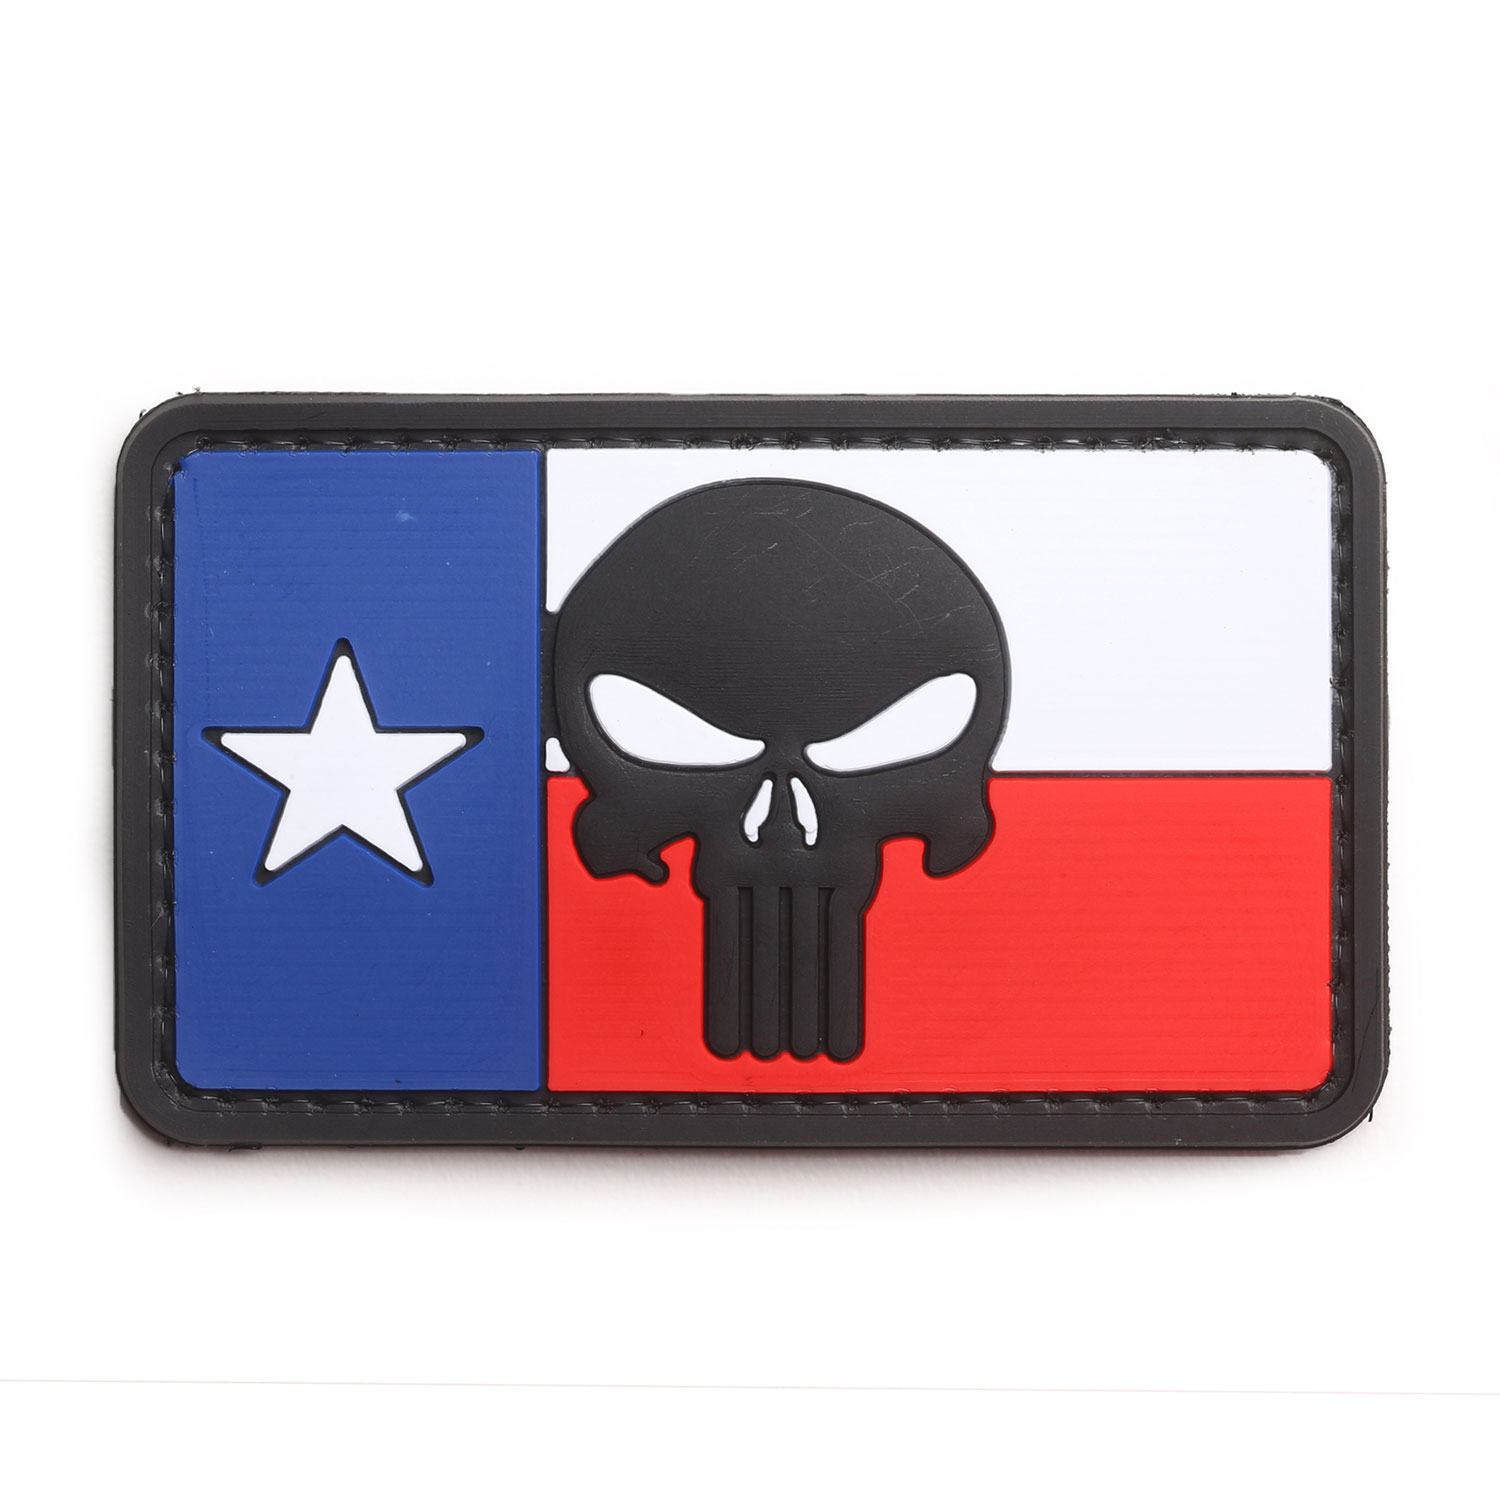 "5ive Star Gear ""Texas Flag Punisher"" Morale Patch"